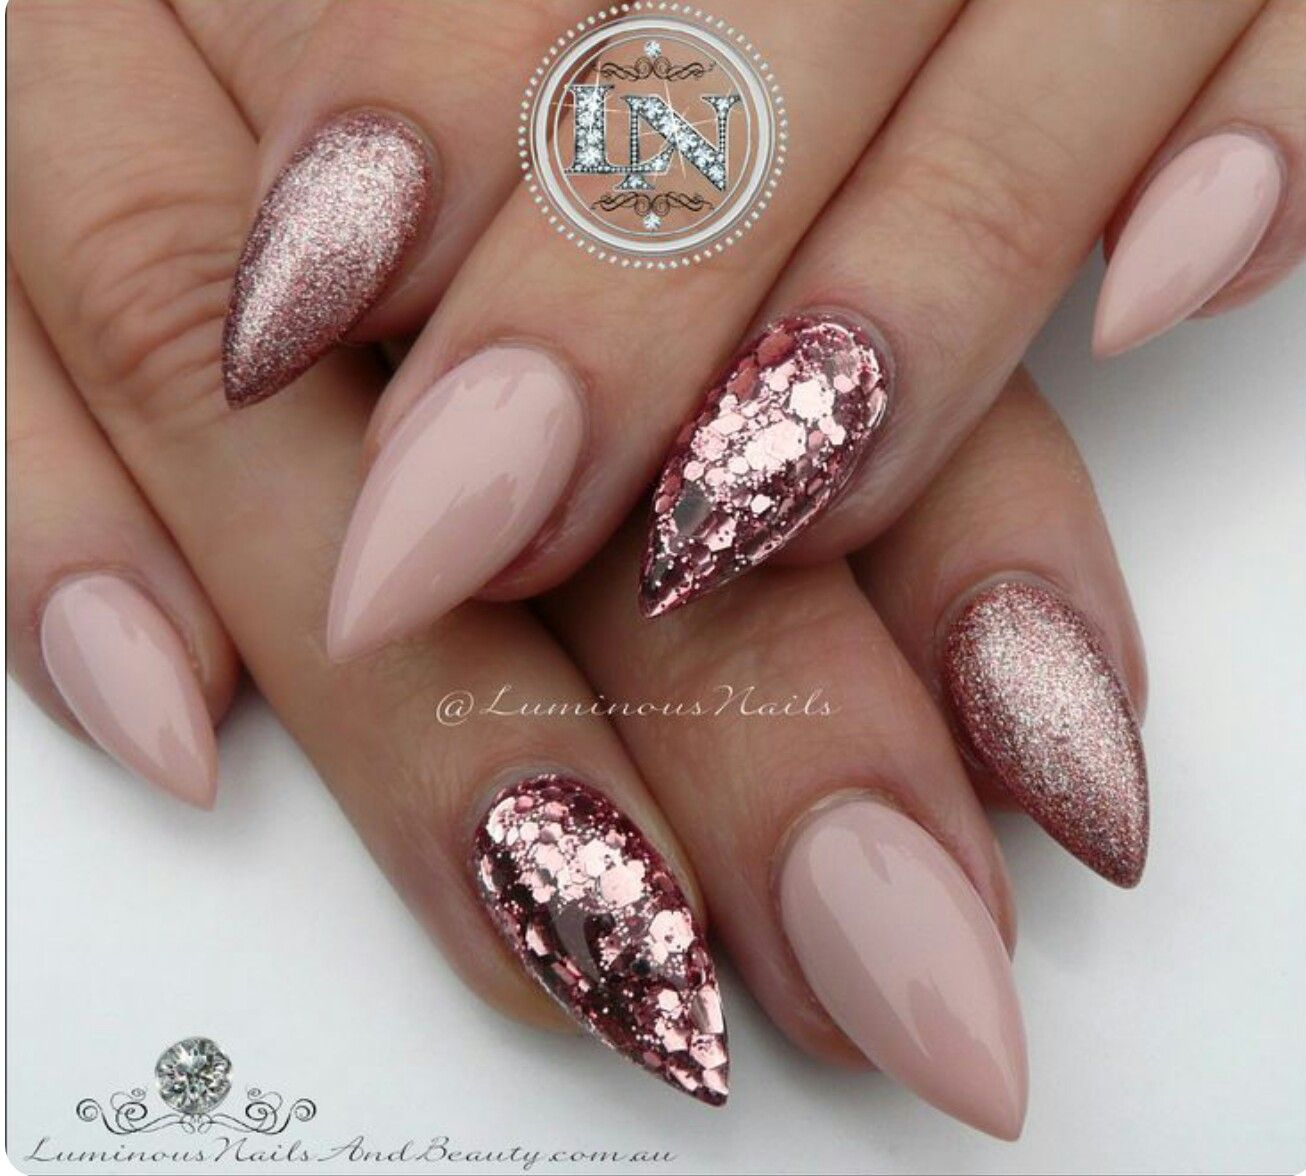 The color, not the shape | Fall nails | Pinterest | Shapes, Nail ...